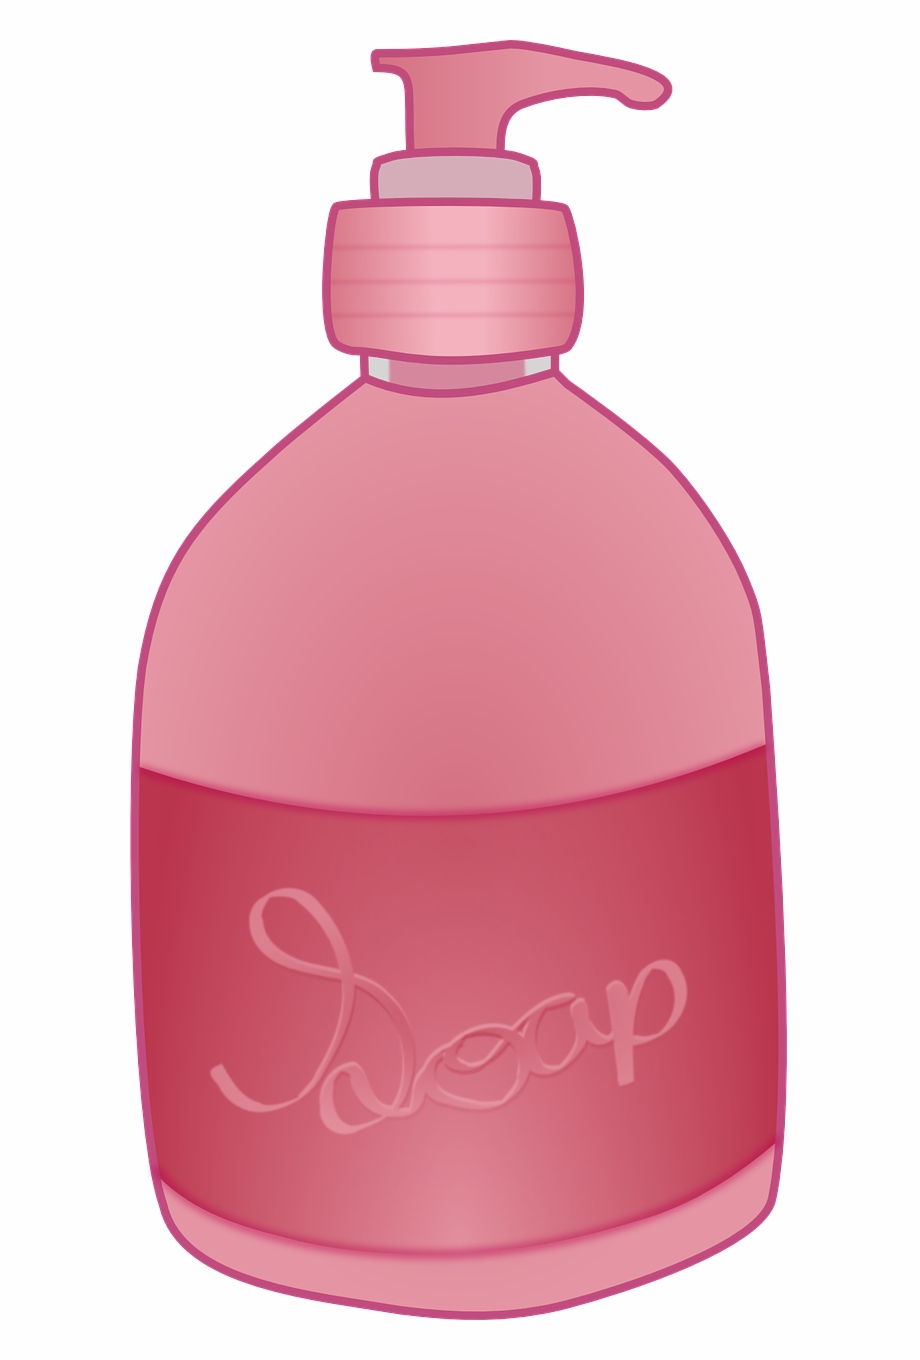 Bottle of soap clipart graphic free download Soap Bottle Hand Pump Wash Png Image - Hand Soap Png Clipart ... graphic free download